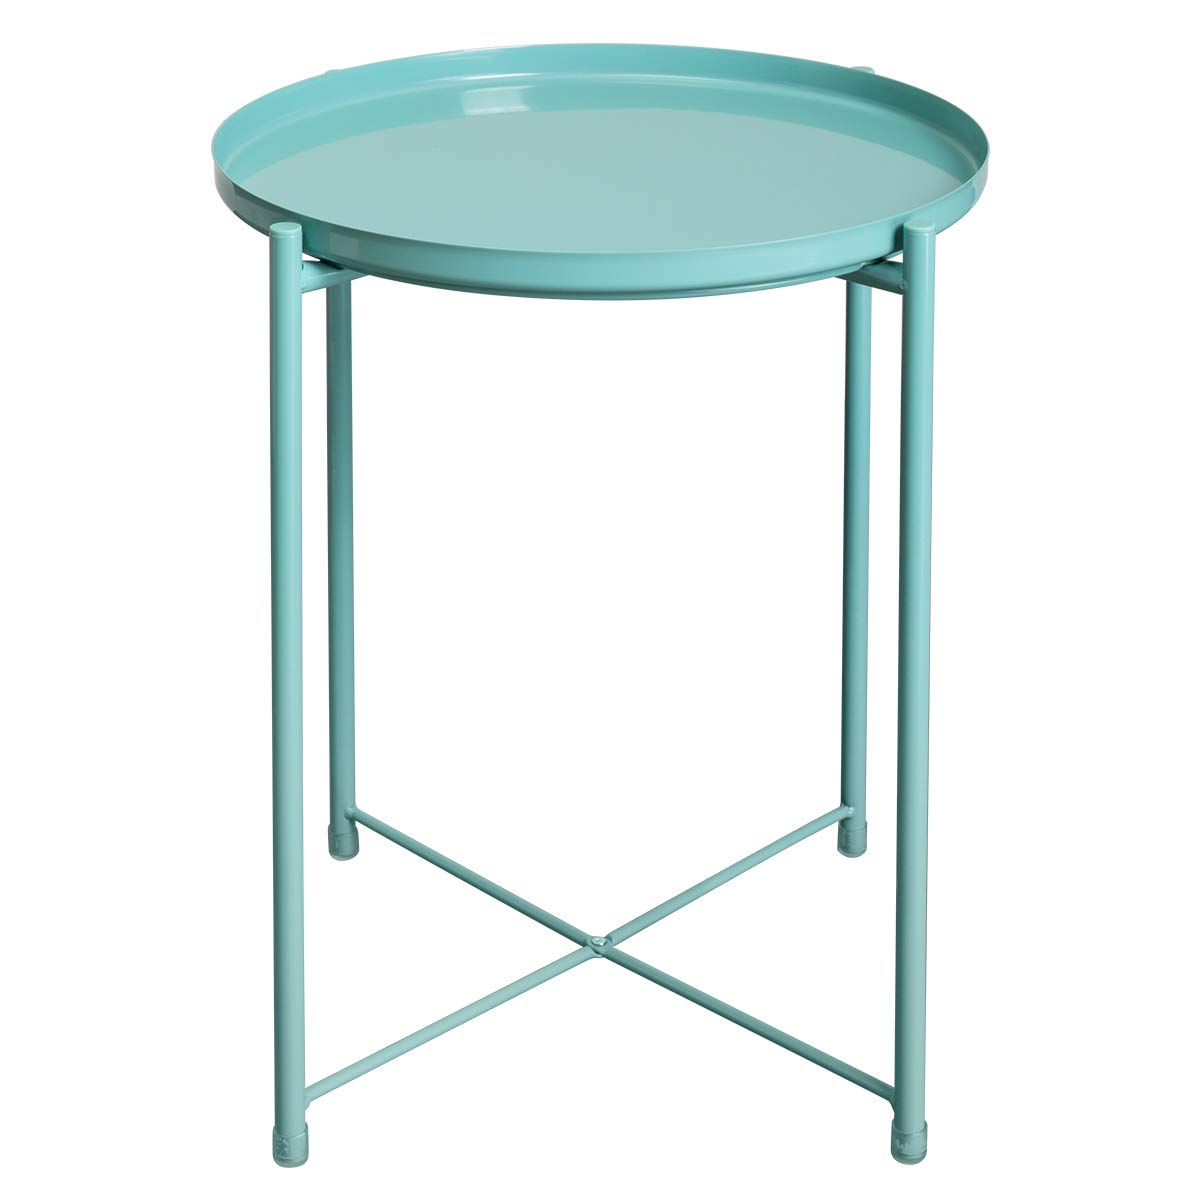 Hollyhome Tray Metal End Table Sofa Table Small Round Side Tables Anti Rust And Waterproof Outdoor Indoor Snack Table Accent Coffee Table H 20 28 X D 16 38 Blue Buy Online In Guernsey At Guernsey Desertcart Com